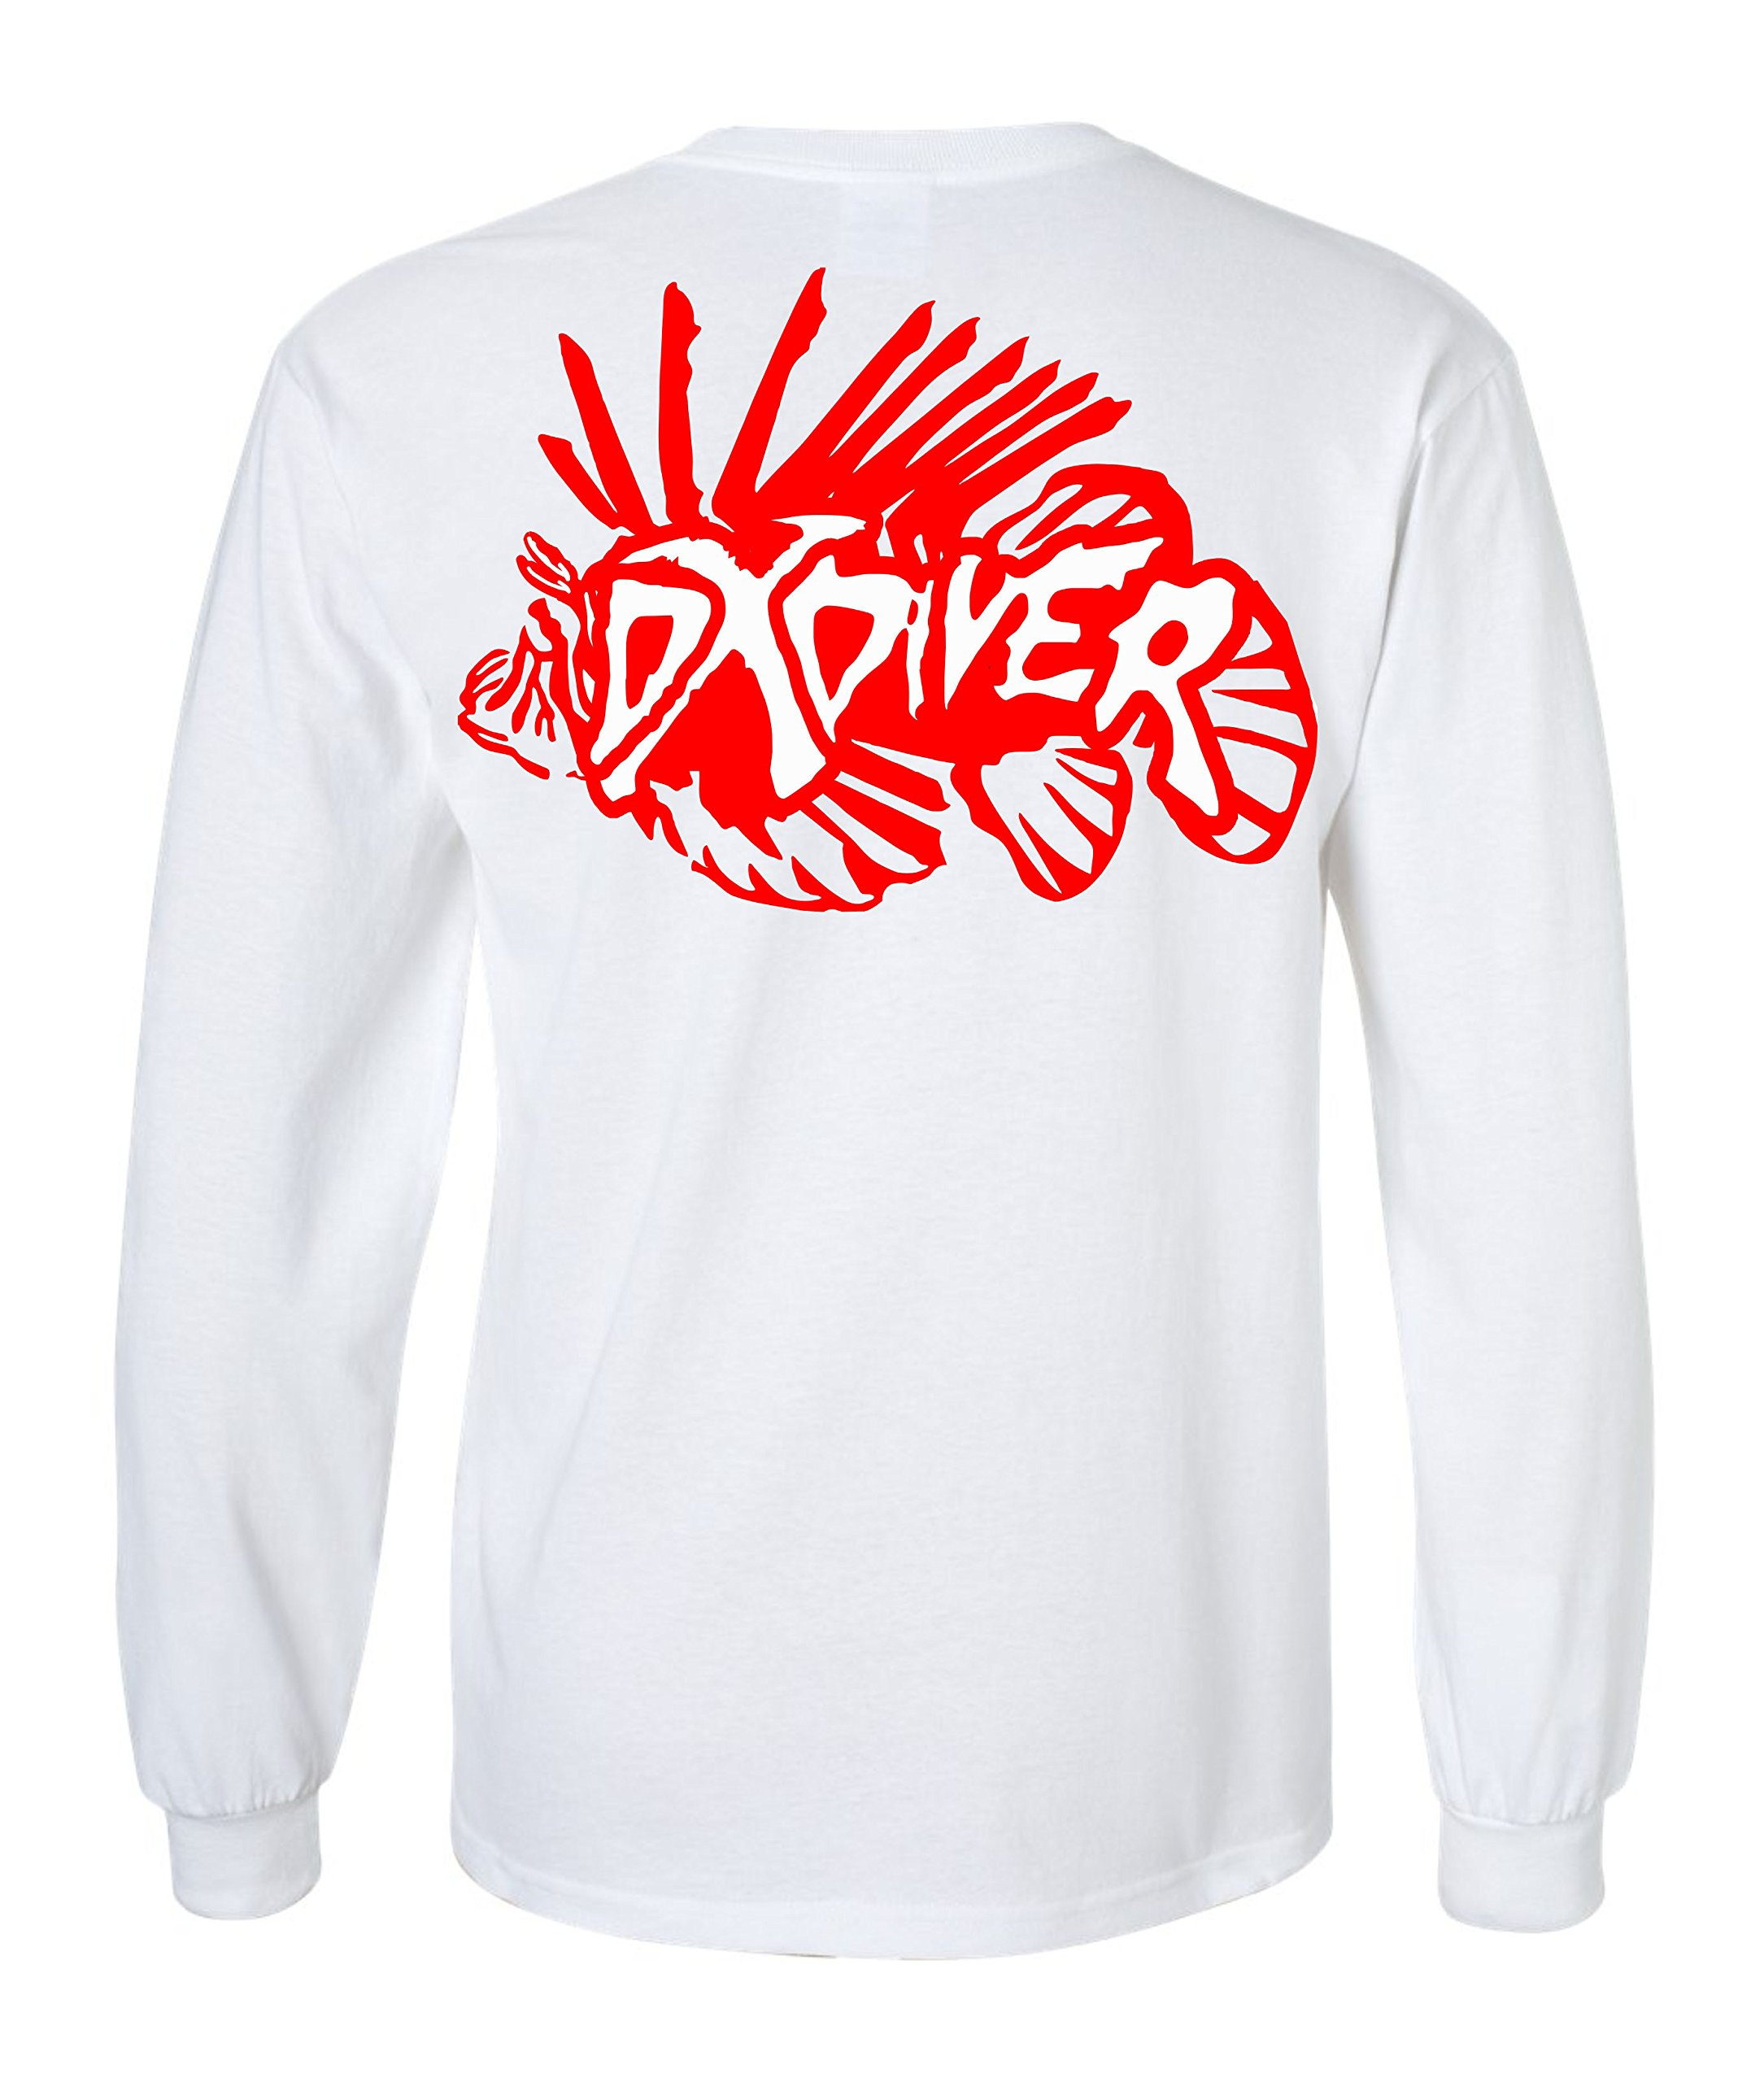 24'' Zoo Keeper Clear Lionfish Containment Unit Medium LCU-16 DXDiver Wicking Shirt Sun Protection Size Small Scuba Diving Freediving Spearfishing Longsleeve by ZooKeeper (Image #5)